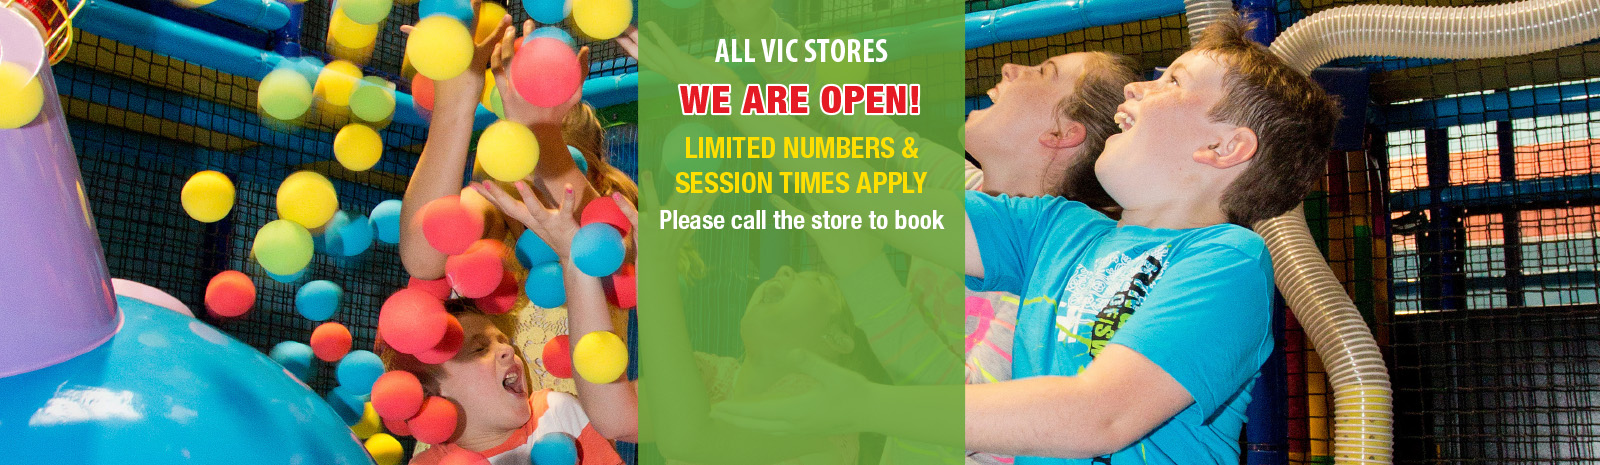 VIC-we-are-open